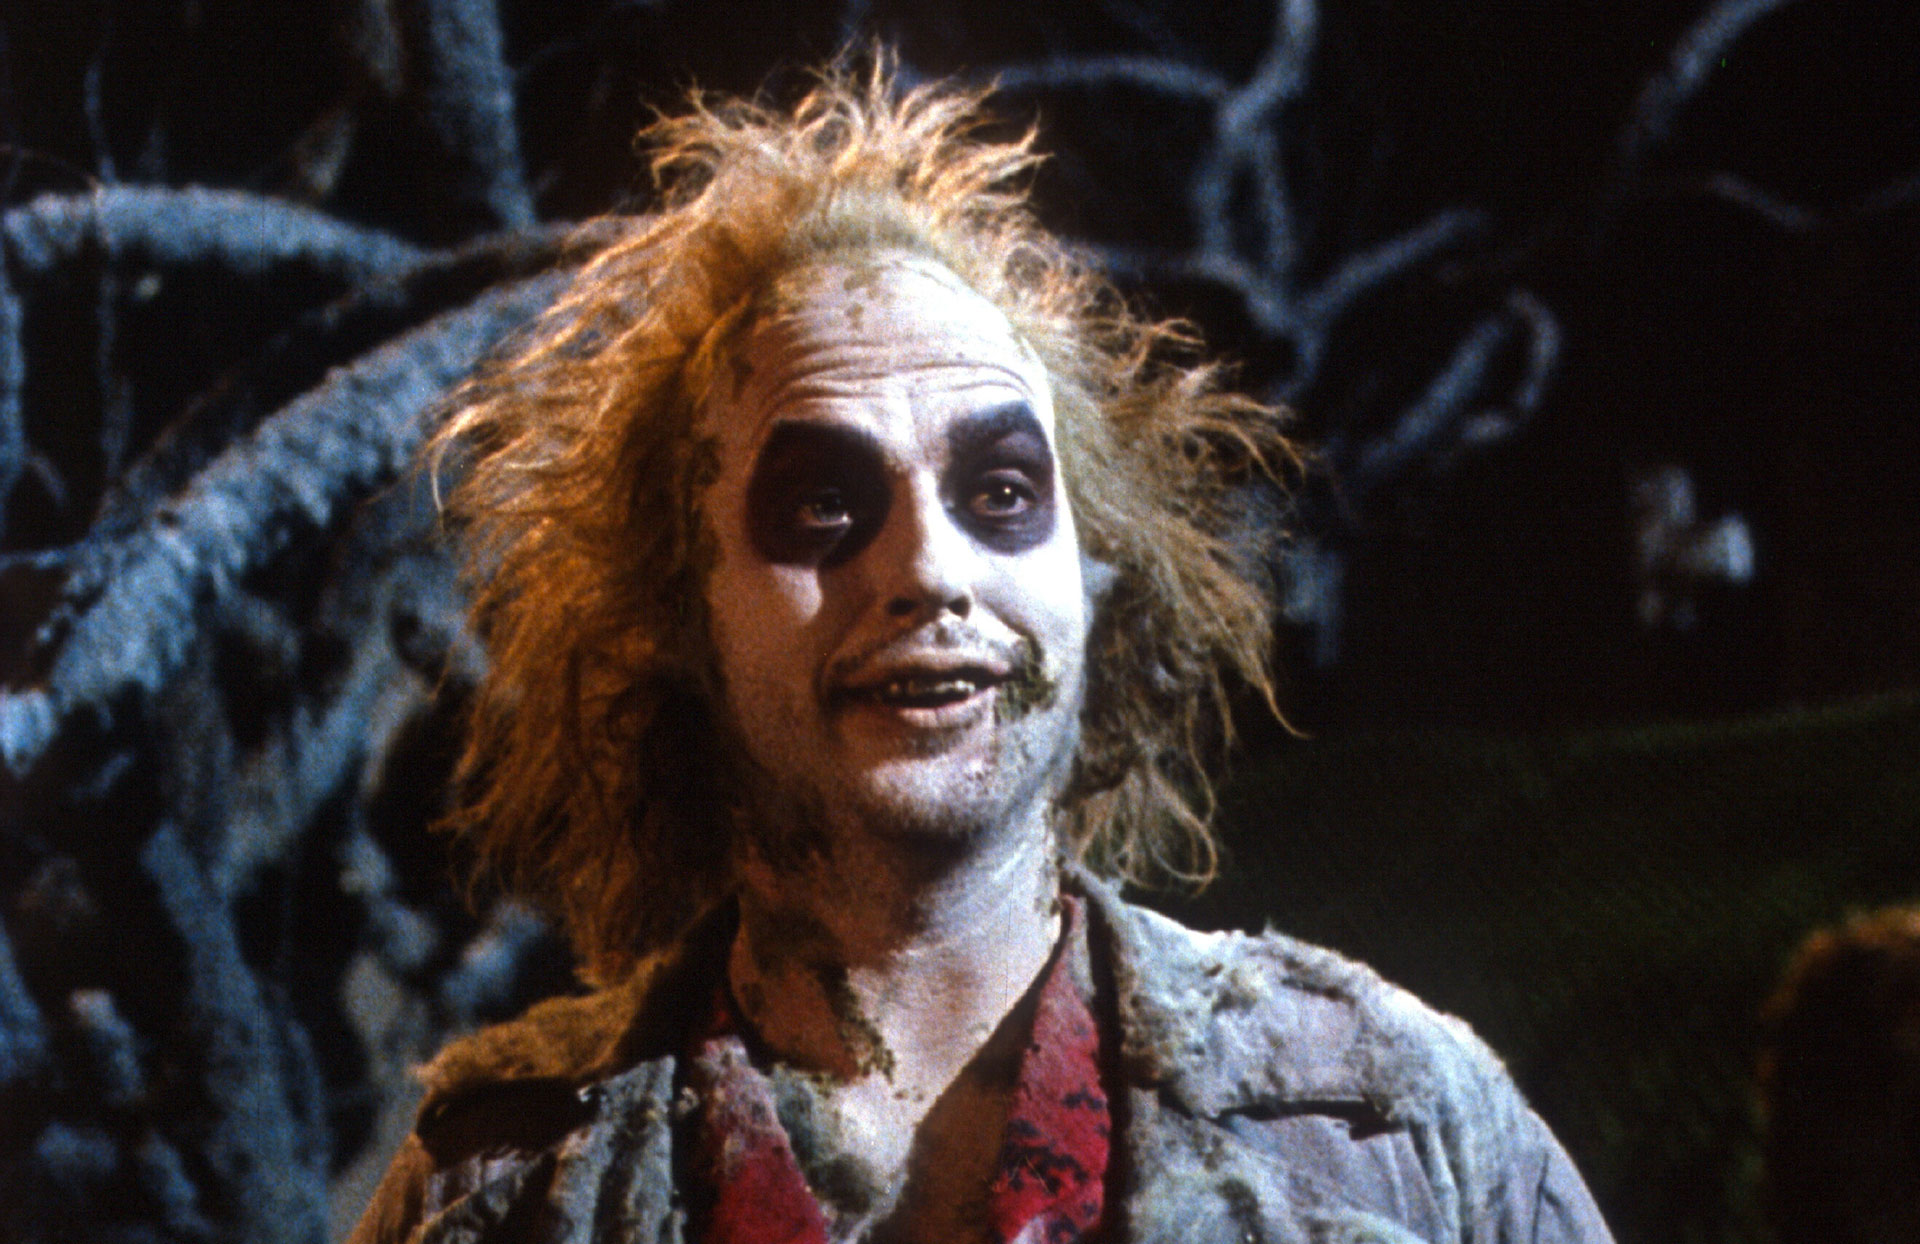 beetlejuice with introduction by michael keaton george eastman museum